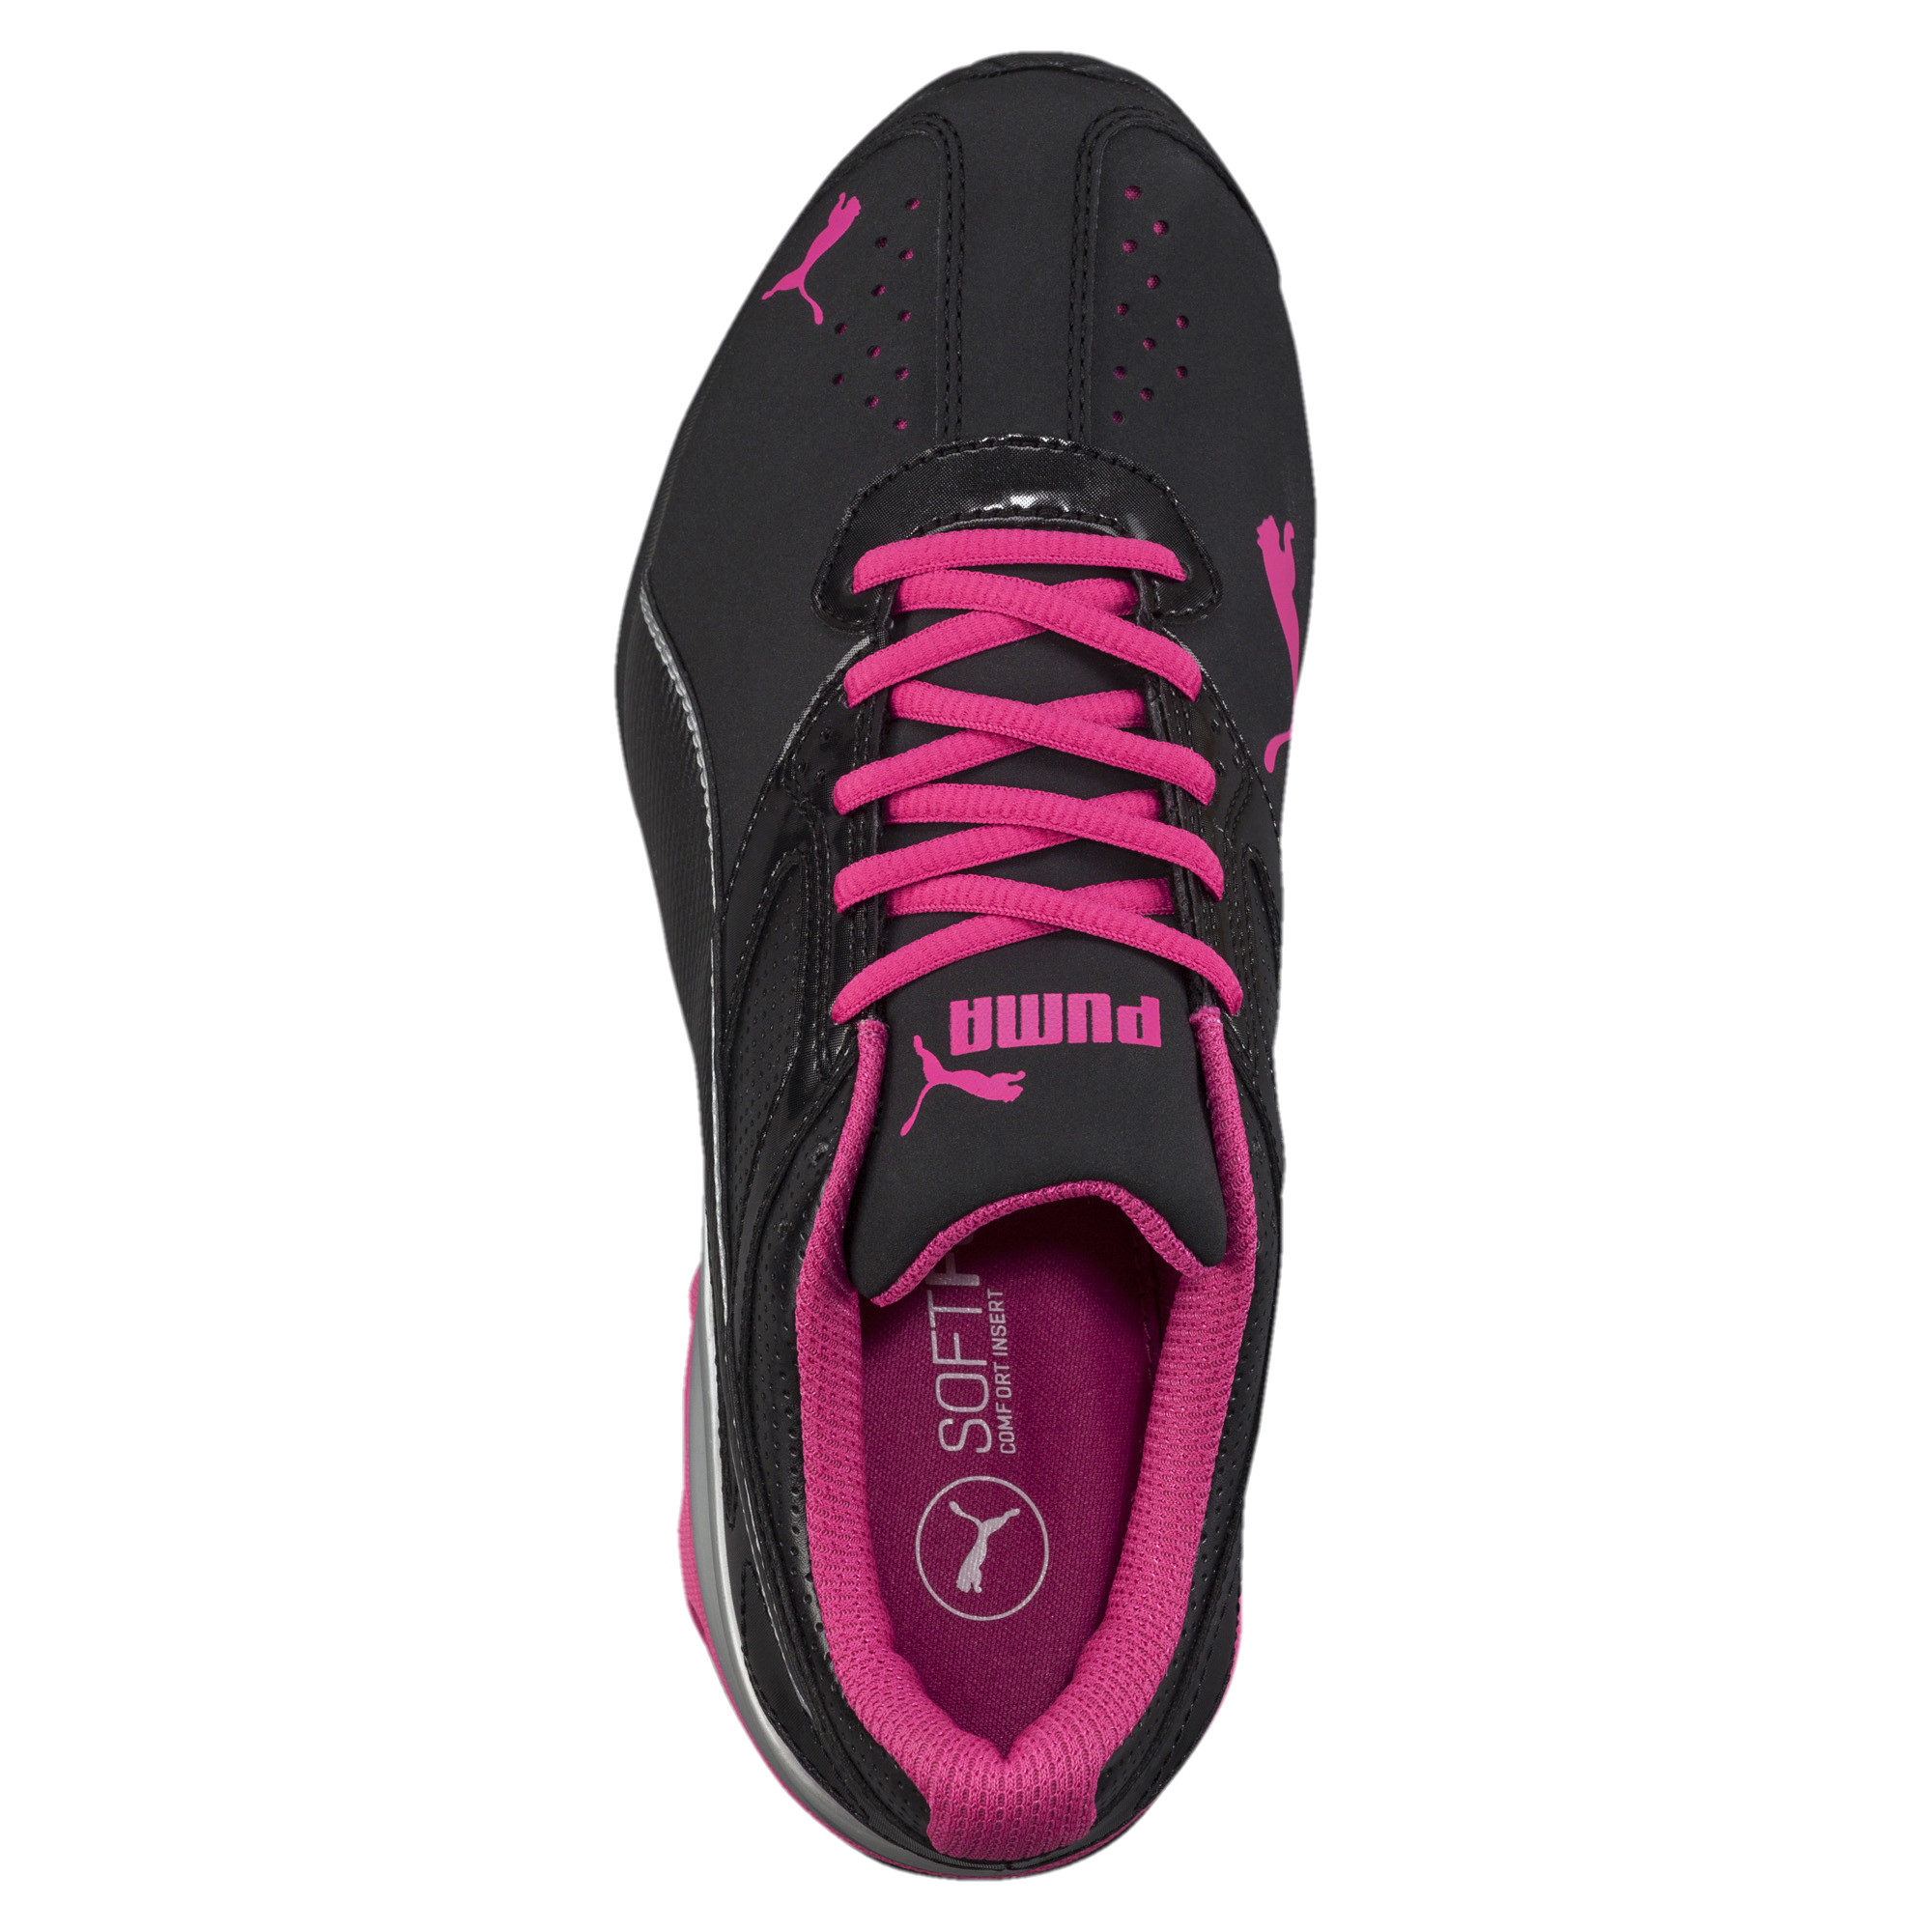 PUMA-Tazon-6-FM-Women-039-s-Sneakers-Women-Shoe-Running thumbnail 6